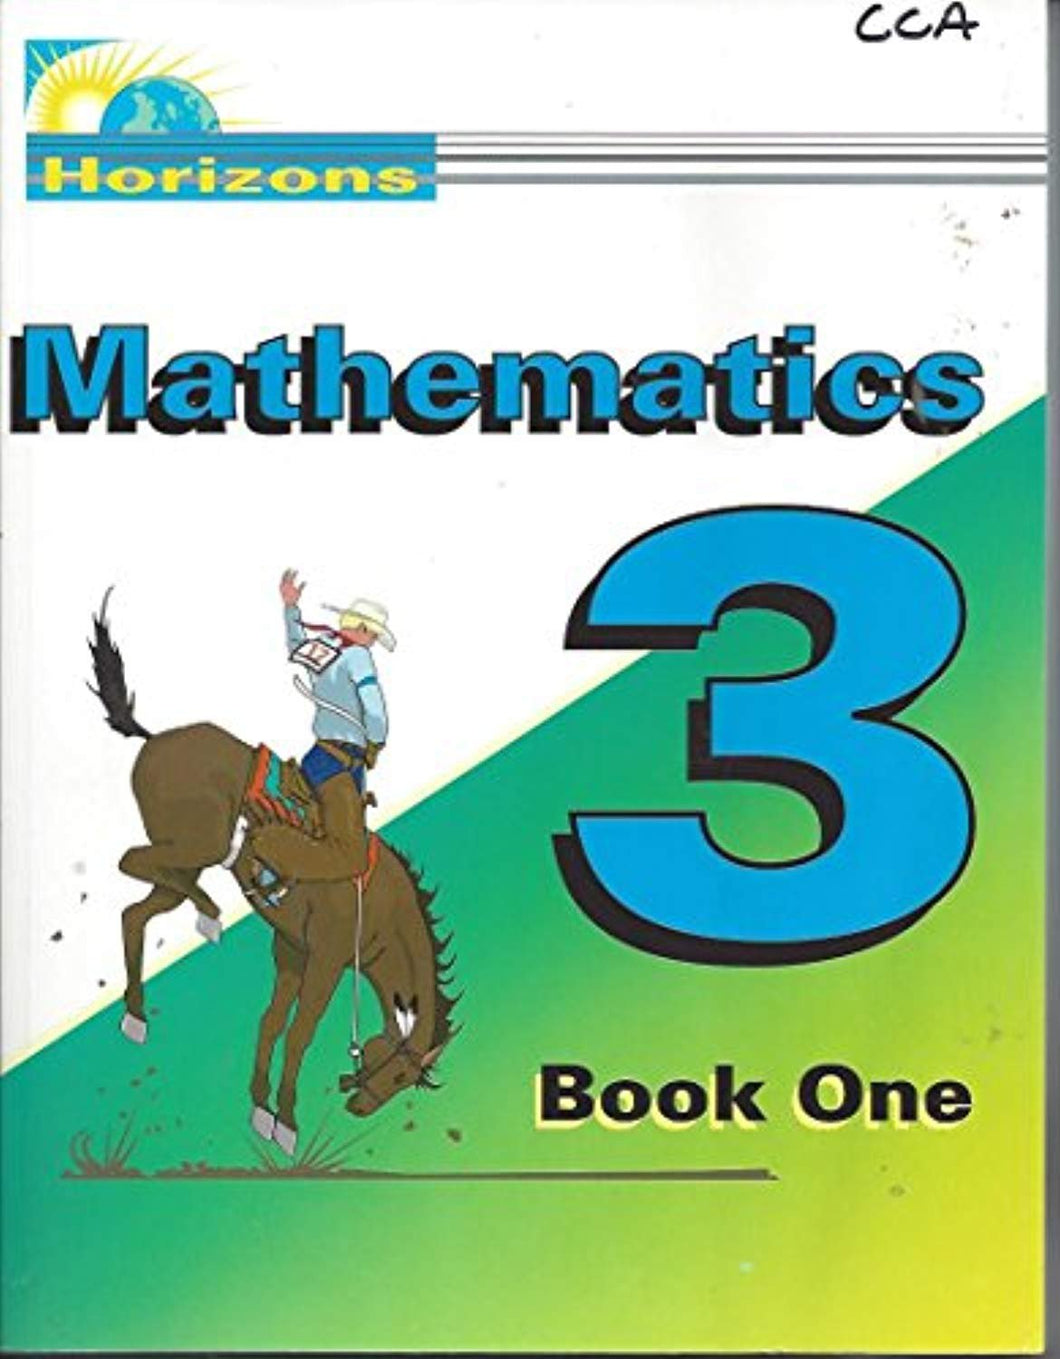 Horizons Math BOOK 1 (Lifepac)